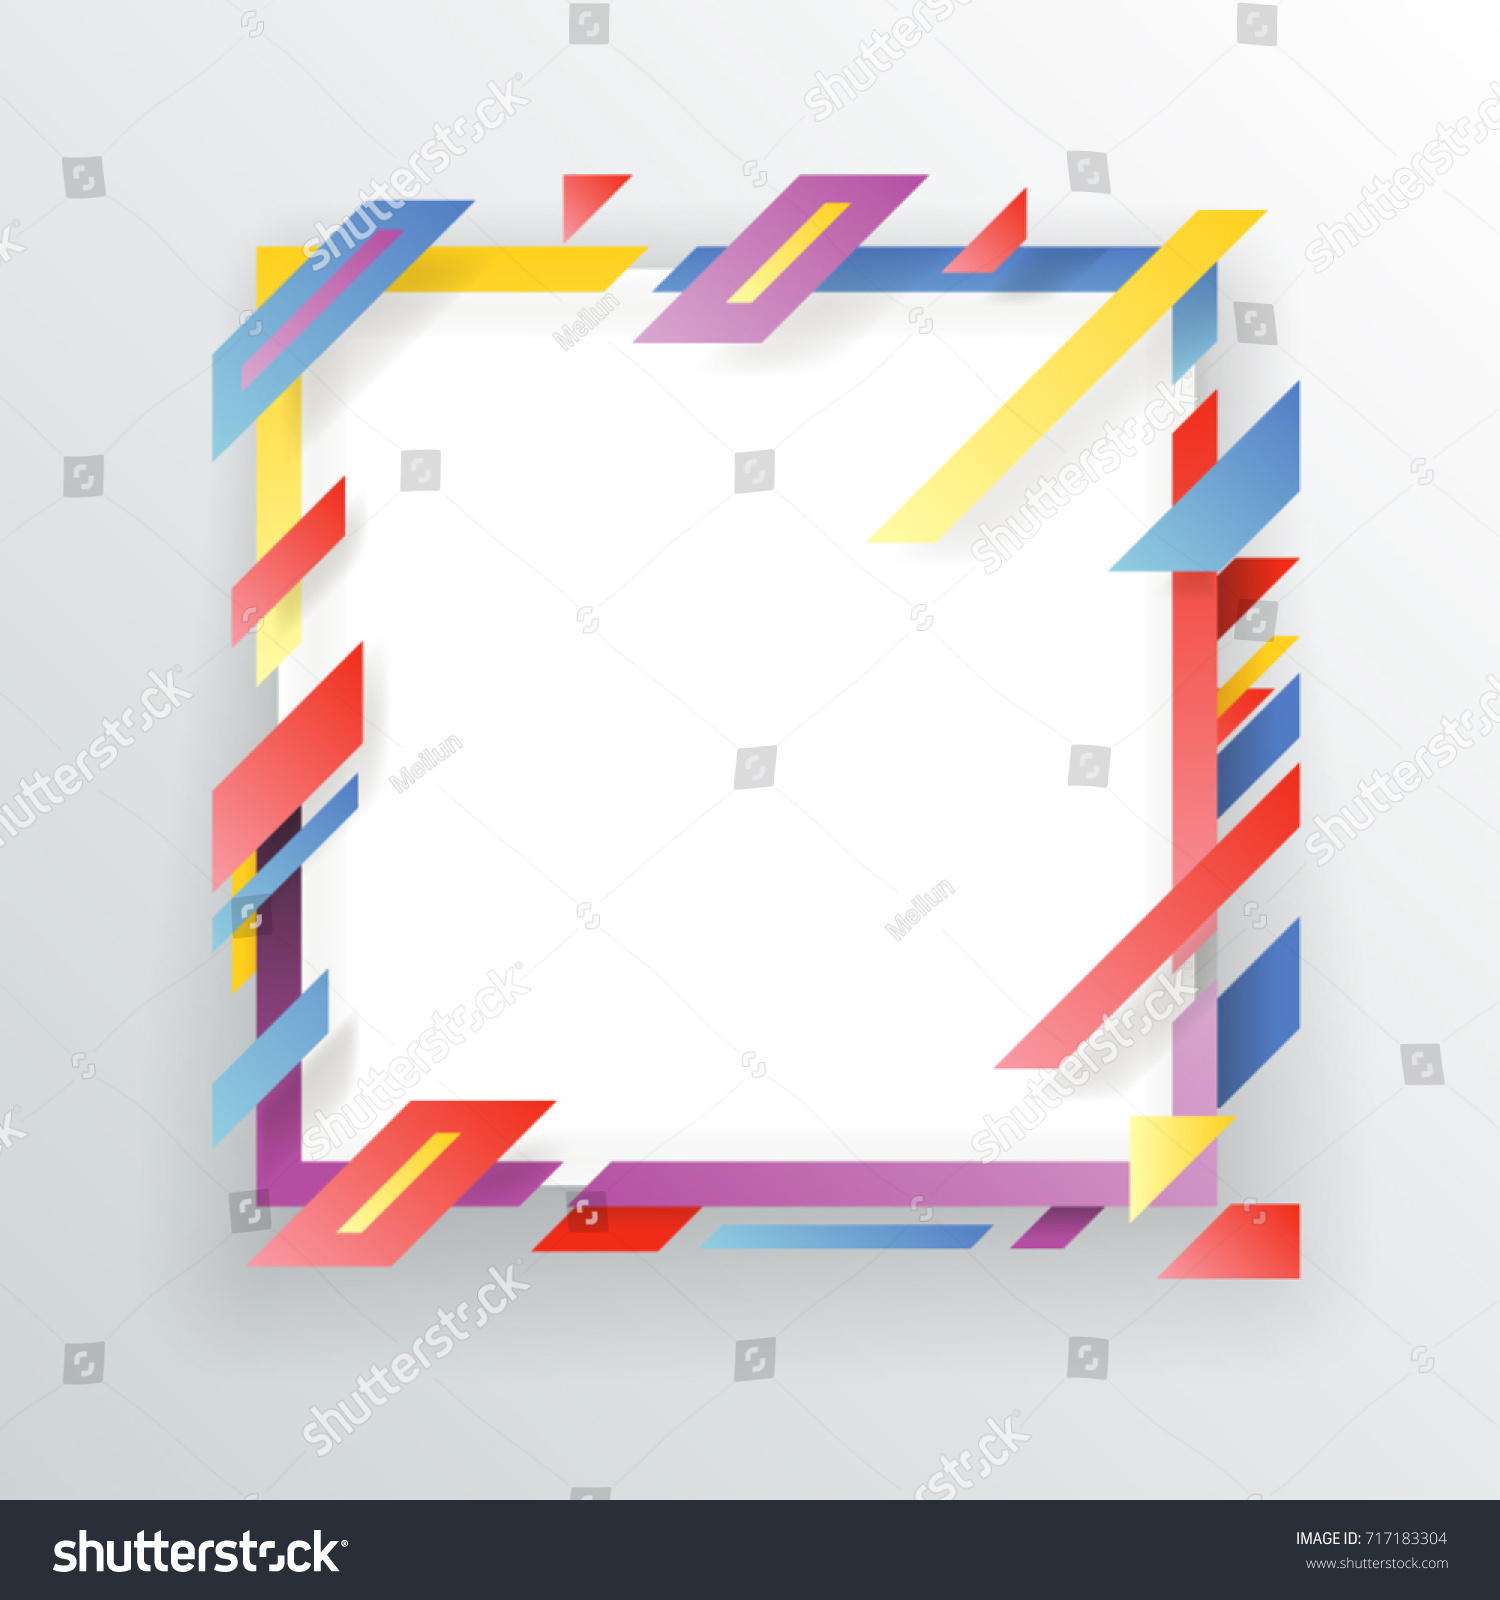 Abstract Paper Frame Flyer Geometric Background Stock Vector ...